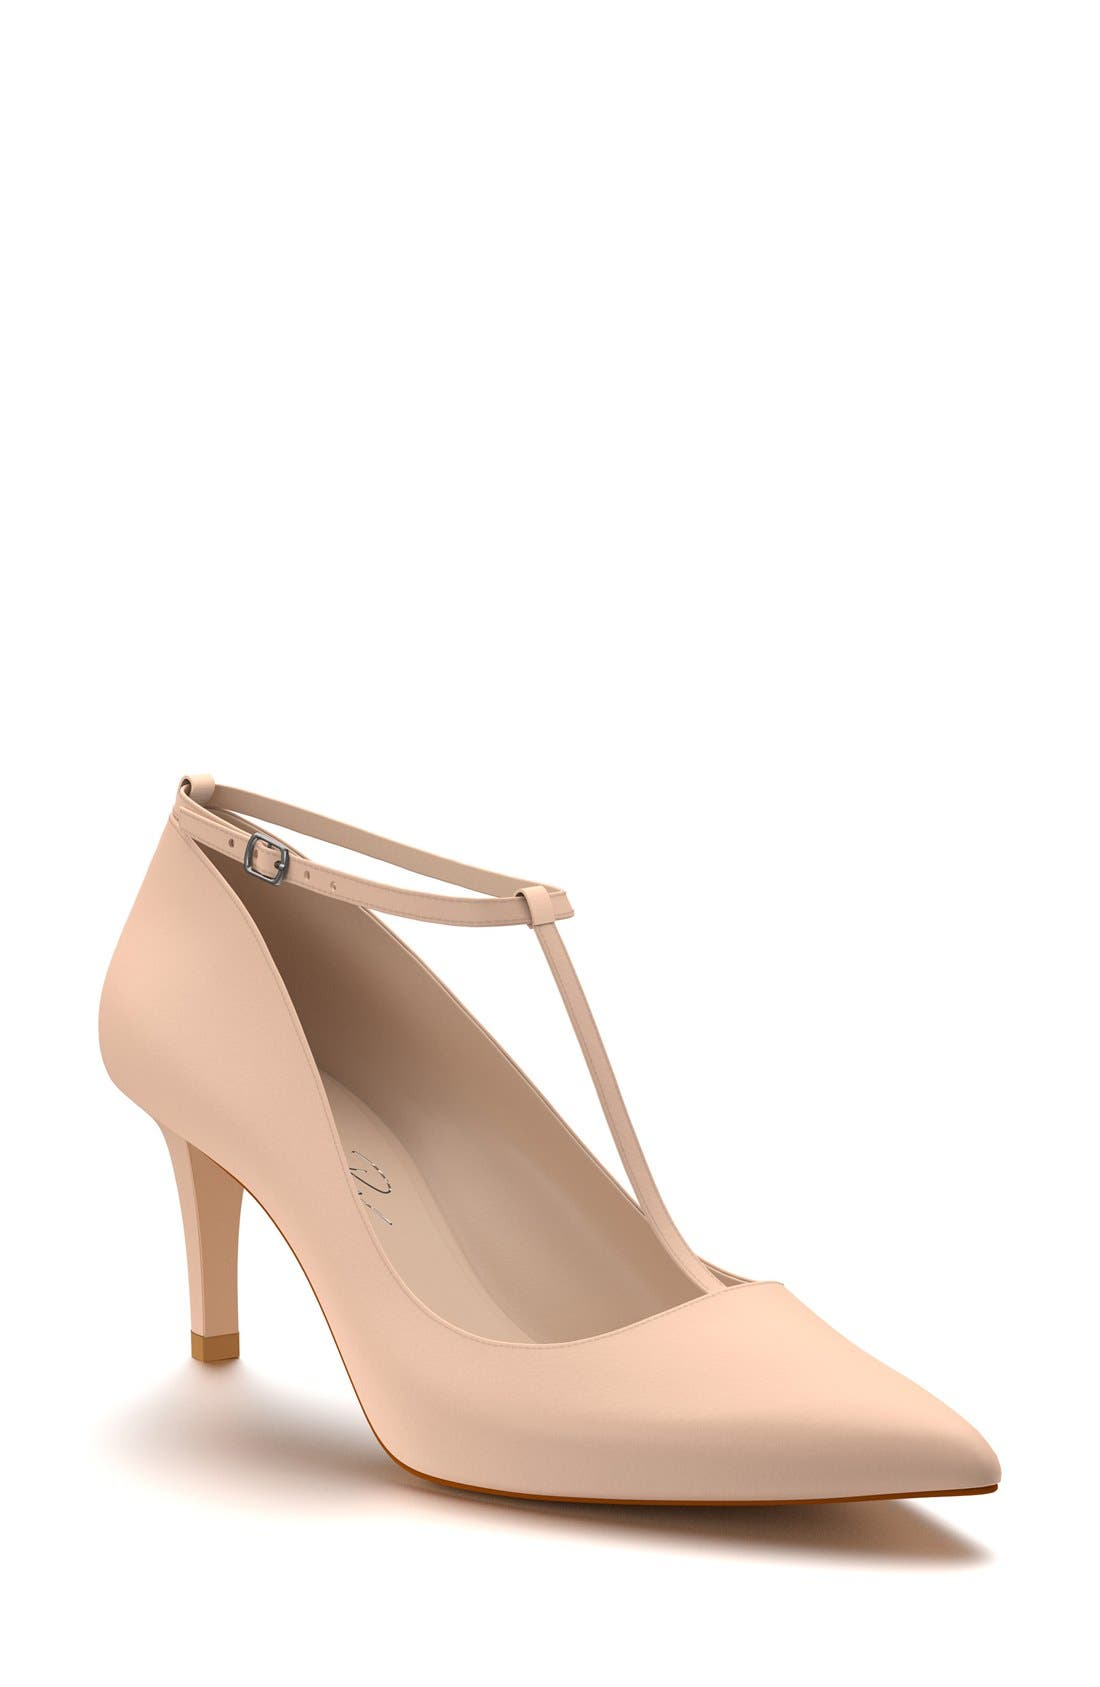 T-Strap Pump,                             Main thumbnail 1, color,                             Blush Leather